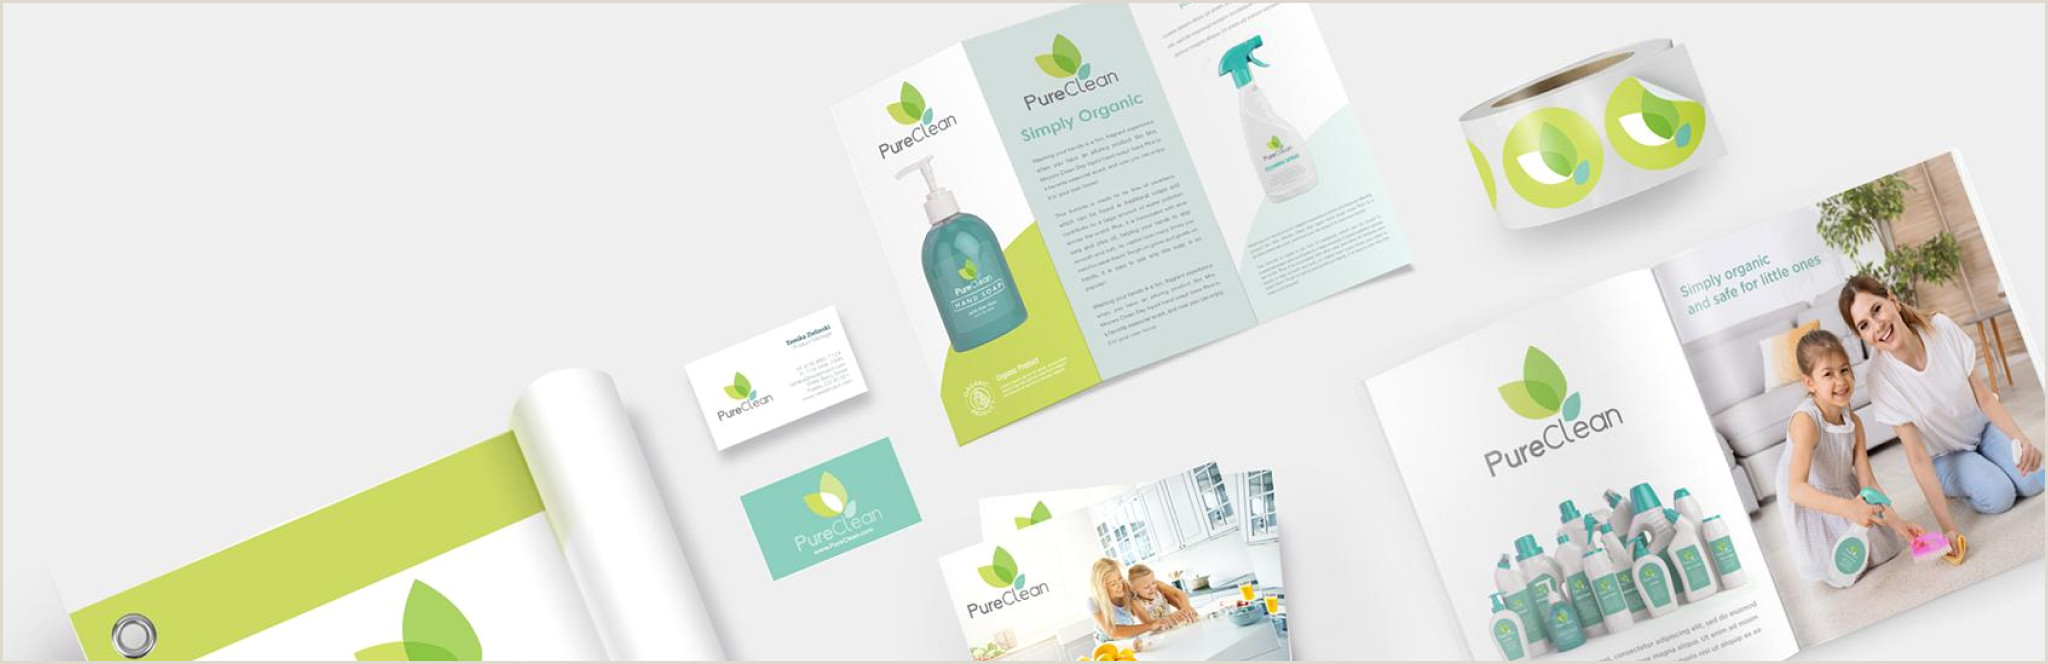 Where To Get Business Cards Made Same Day Printplace High Quality Line Printing Services